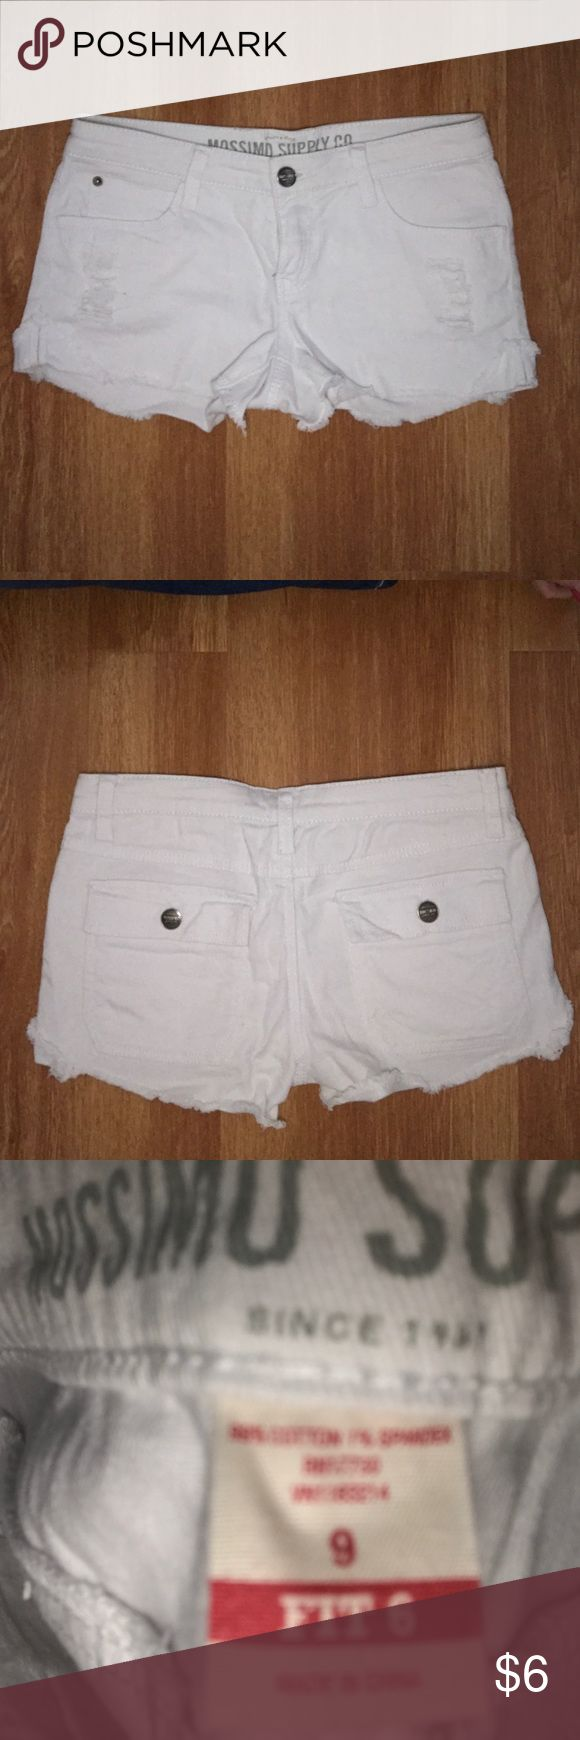 Mossimo White Jean Short Cutoffs Mossimo white cutoff Jean shirt shorts. Gently used, good condition other than barely noticeable stain on bottom cuff as shown in picture above. Mossimo Supply Co. Shorts Jean Shorts